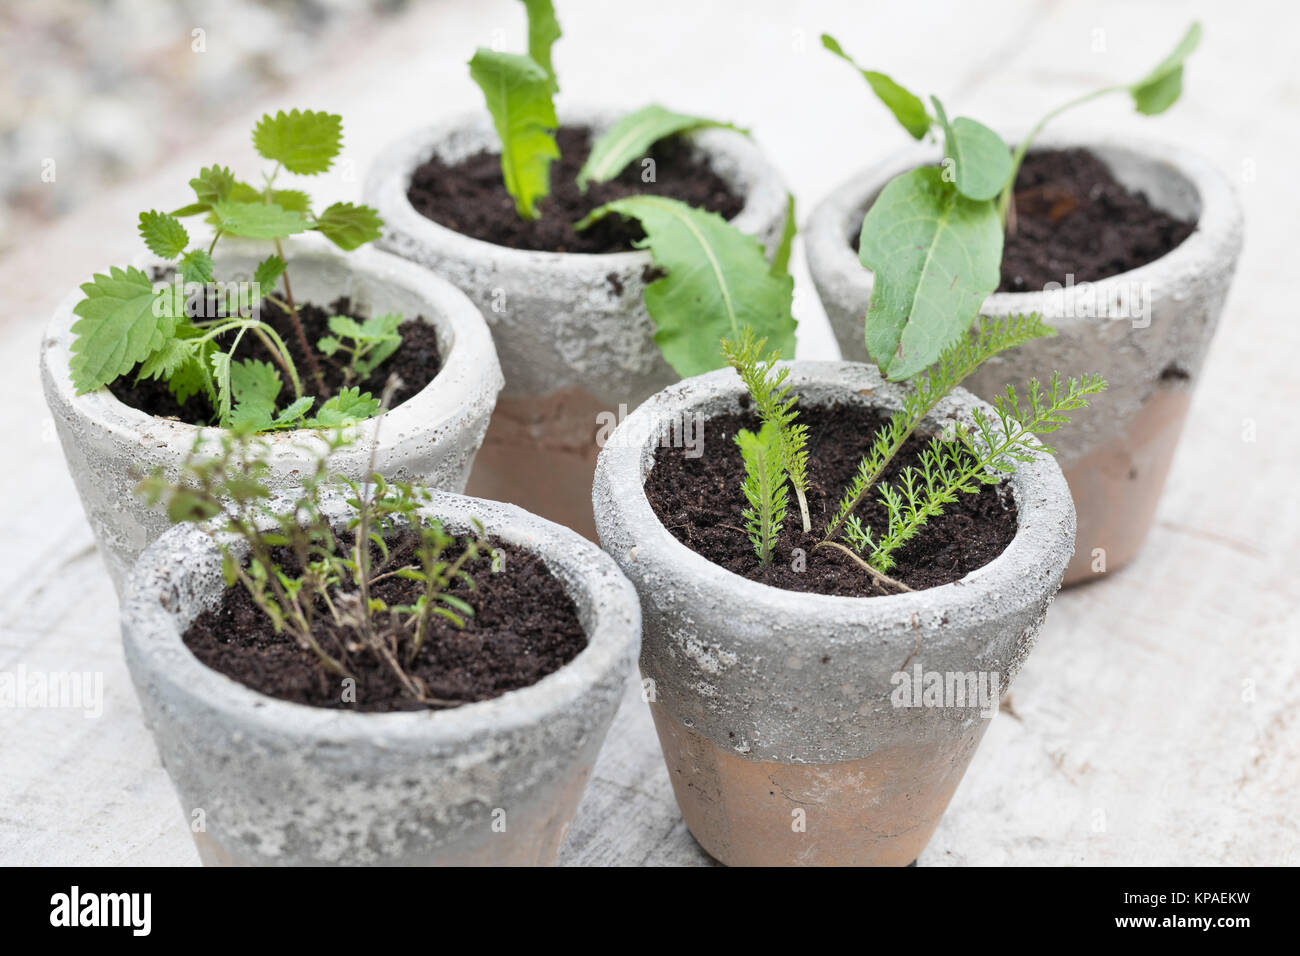 Sand Plantain Plantago Stock Photos U0026 Sand Plantain Plantago Stock Images    Alamy